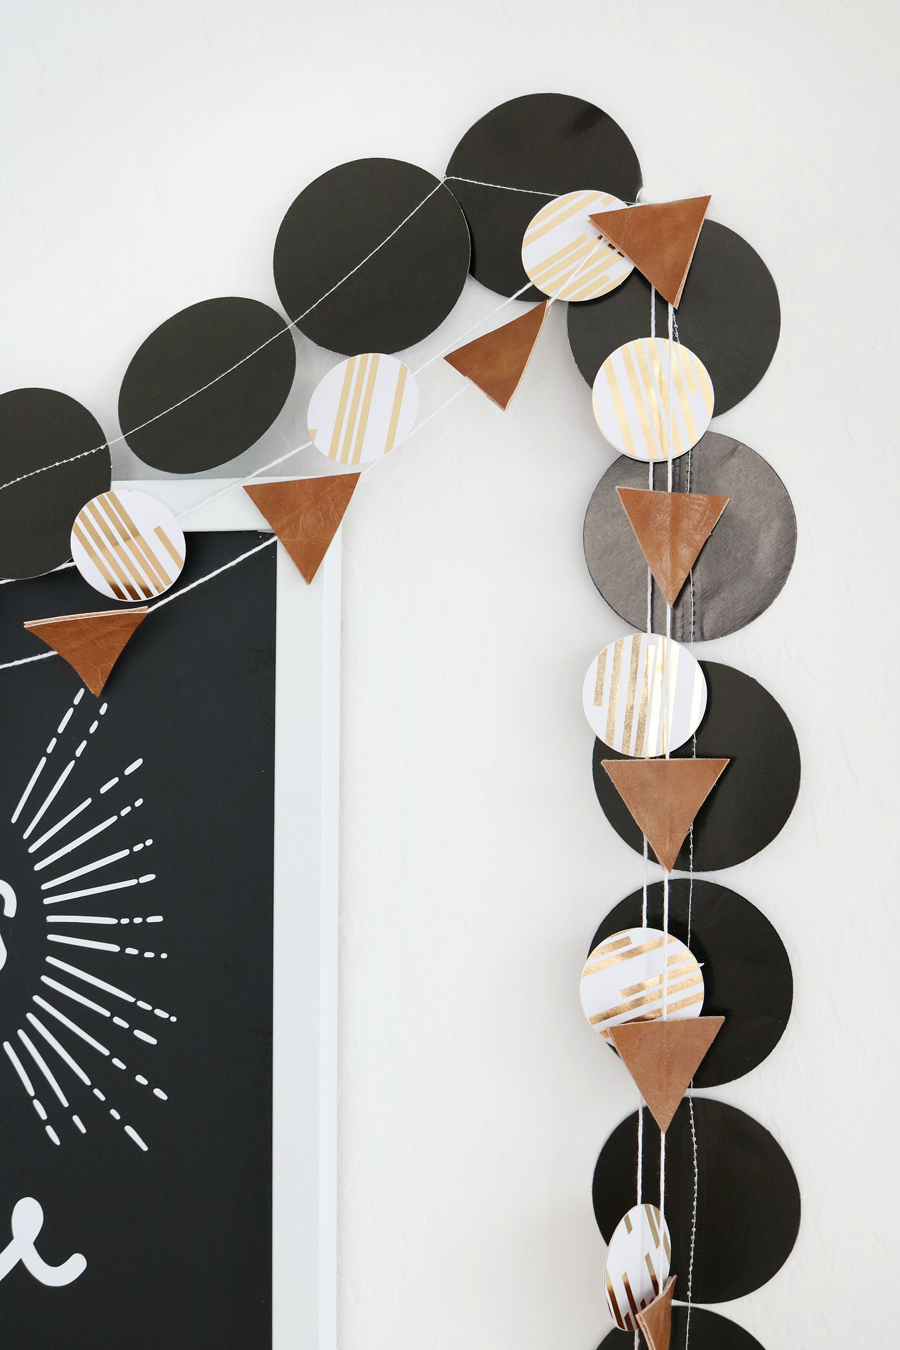 Black & White New Year's Eve Bar Cart Decor - Easy DIY Paper and Faux Leather Garlands